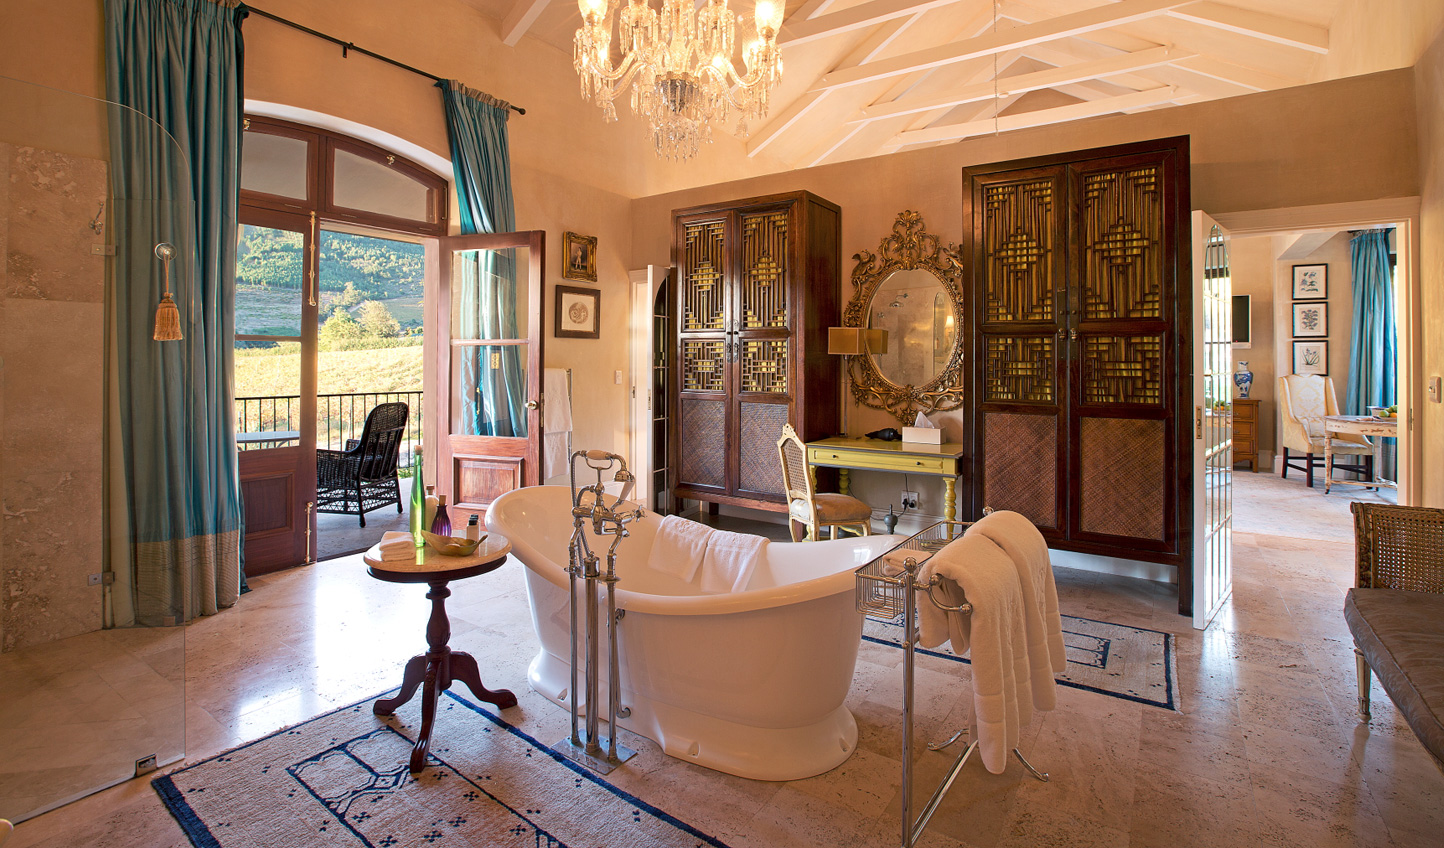 Opulent bathrooms with glorious views